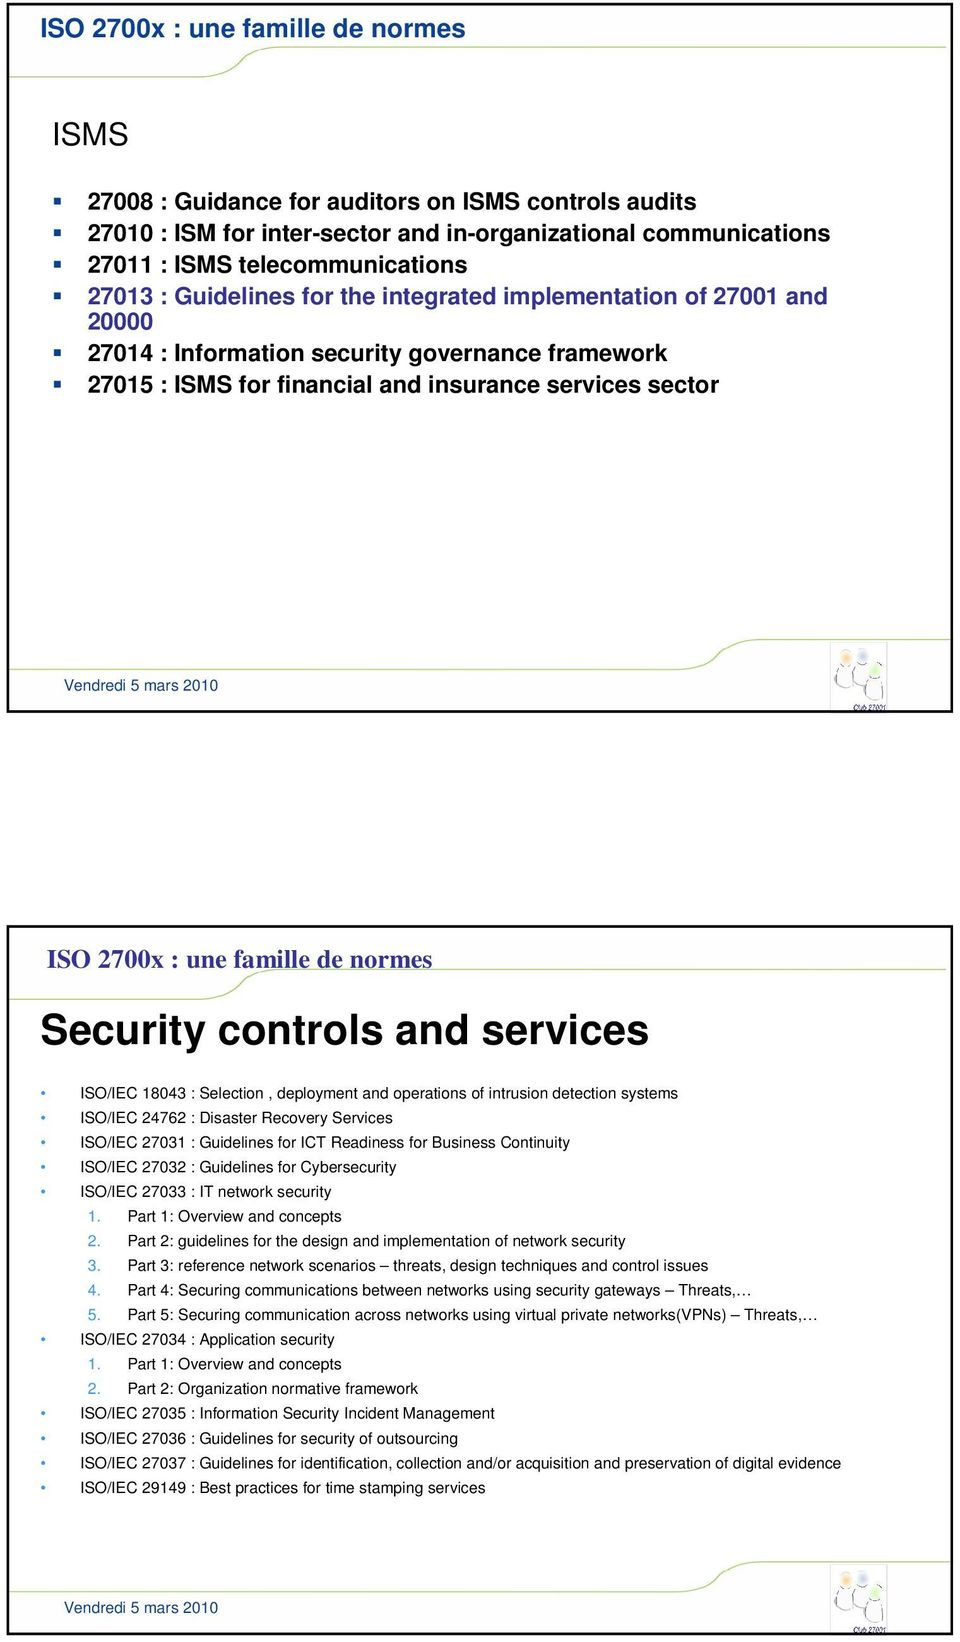 normes Security controls and services /IEC 18043 : Selection, deployment and operations of intrusion detection systems /IEC 24762 : Disaster Recovery Services /IEC 27031 : Guidelines for ICT